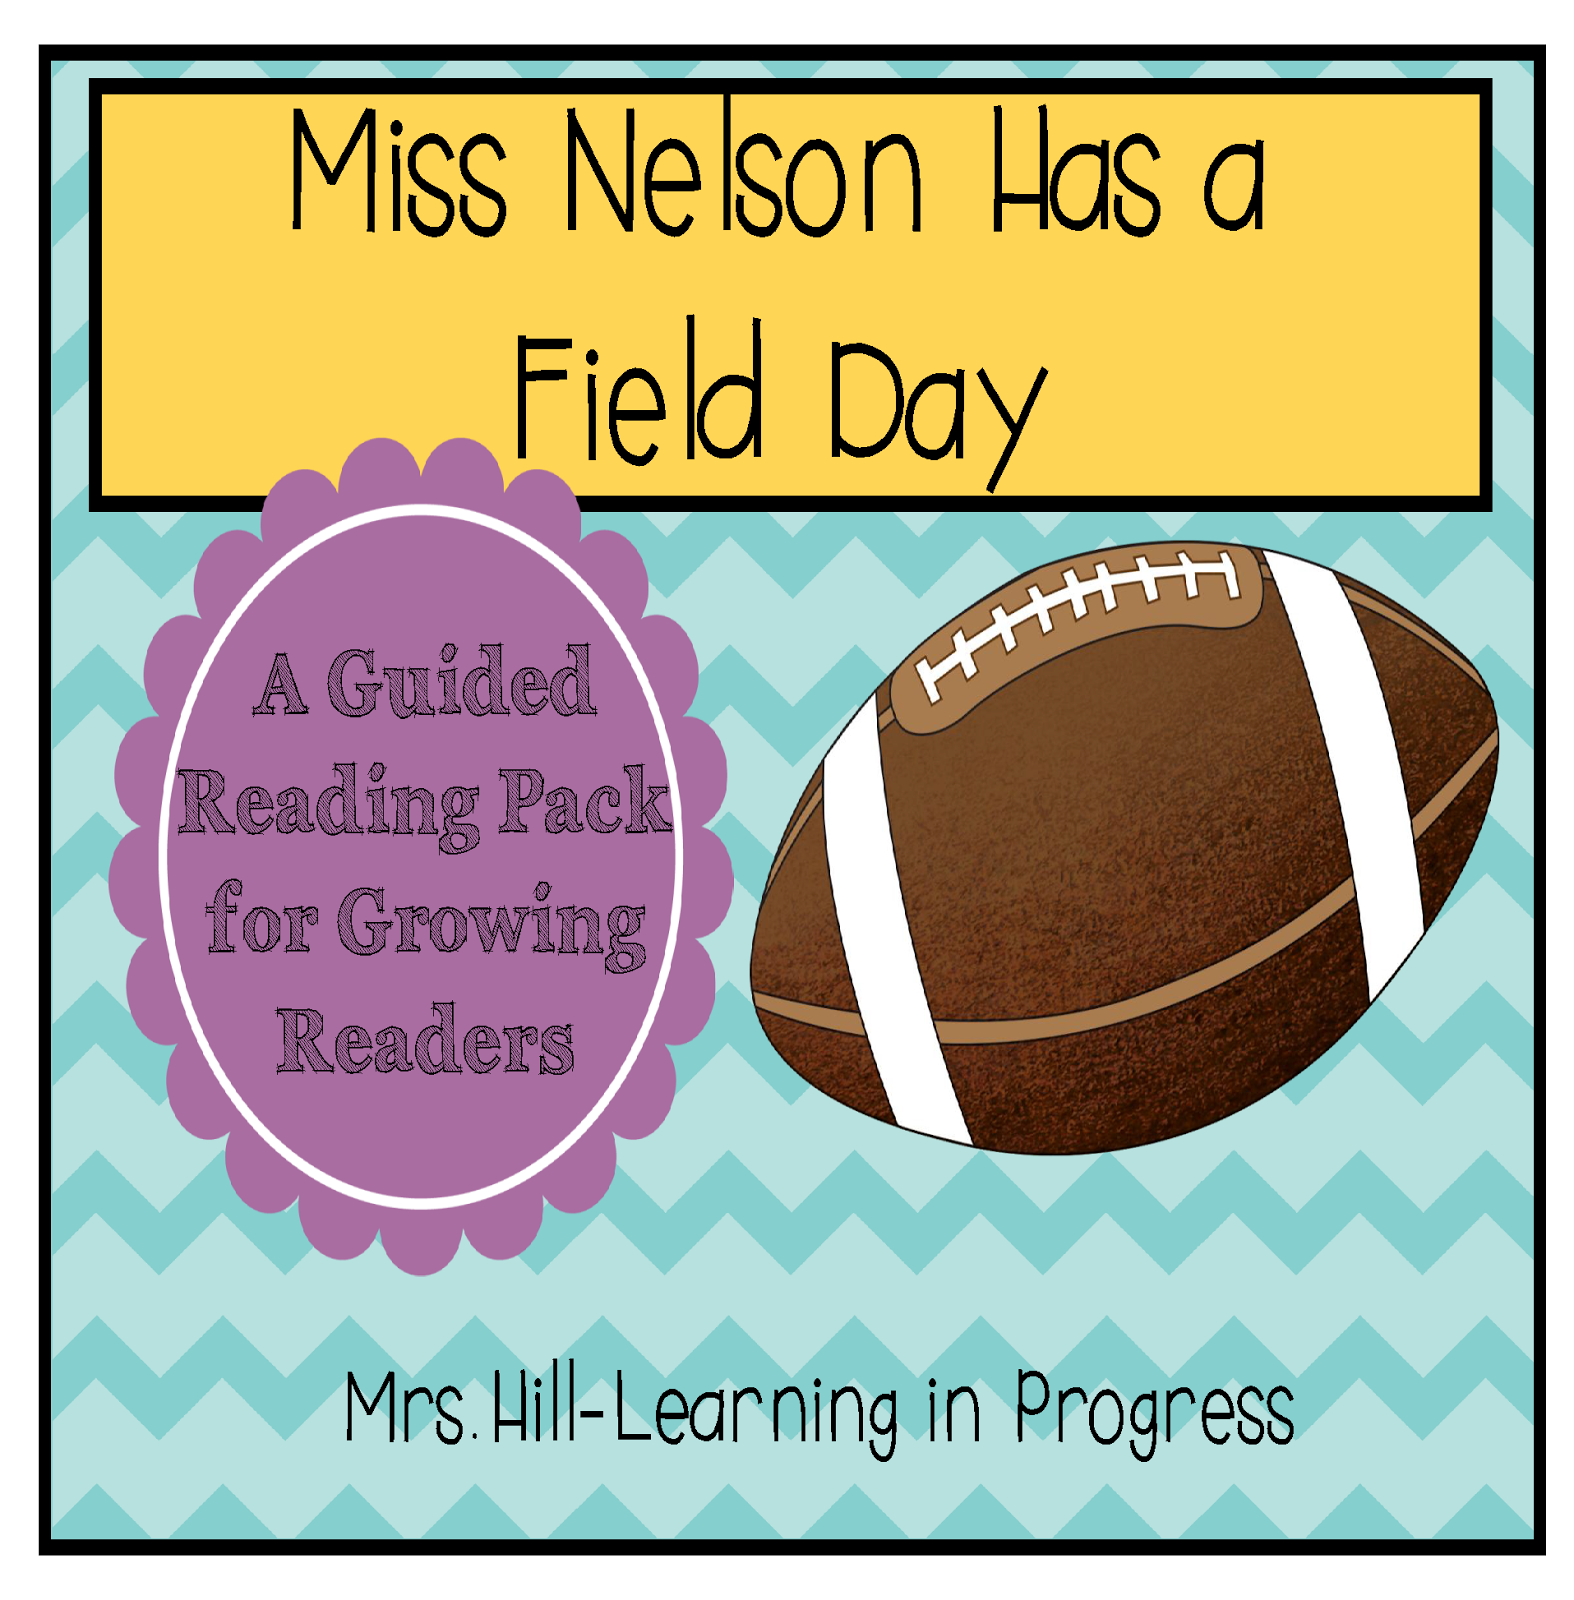 http://www.teacherspayteachers.com/Product/Whistle-for-Willie-Guided-Reading-for-Growing-Readers-1226383